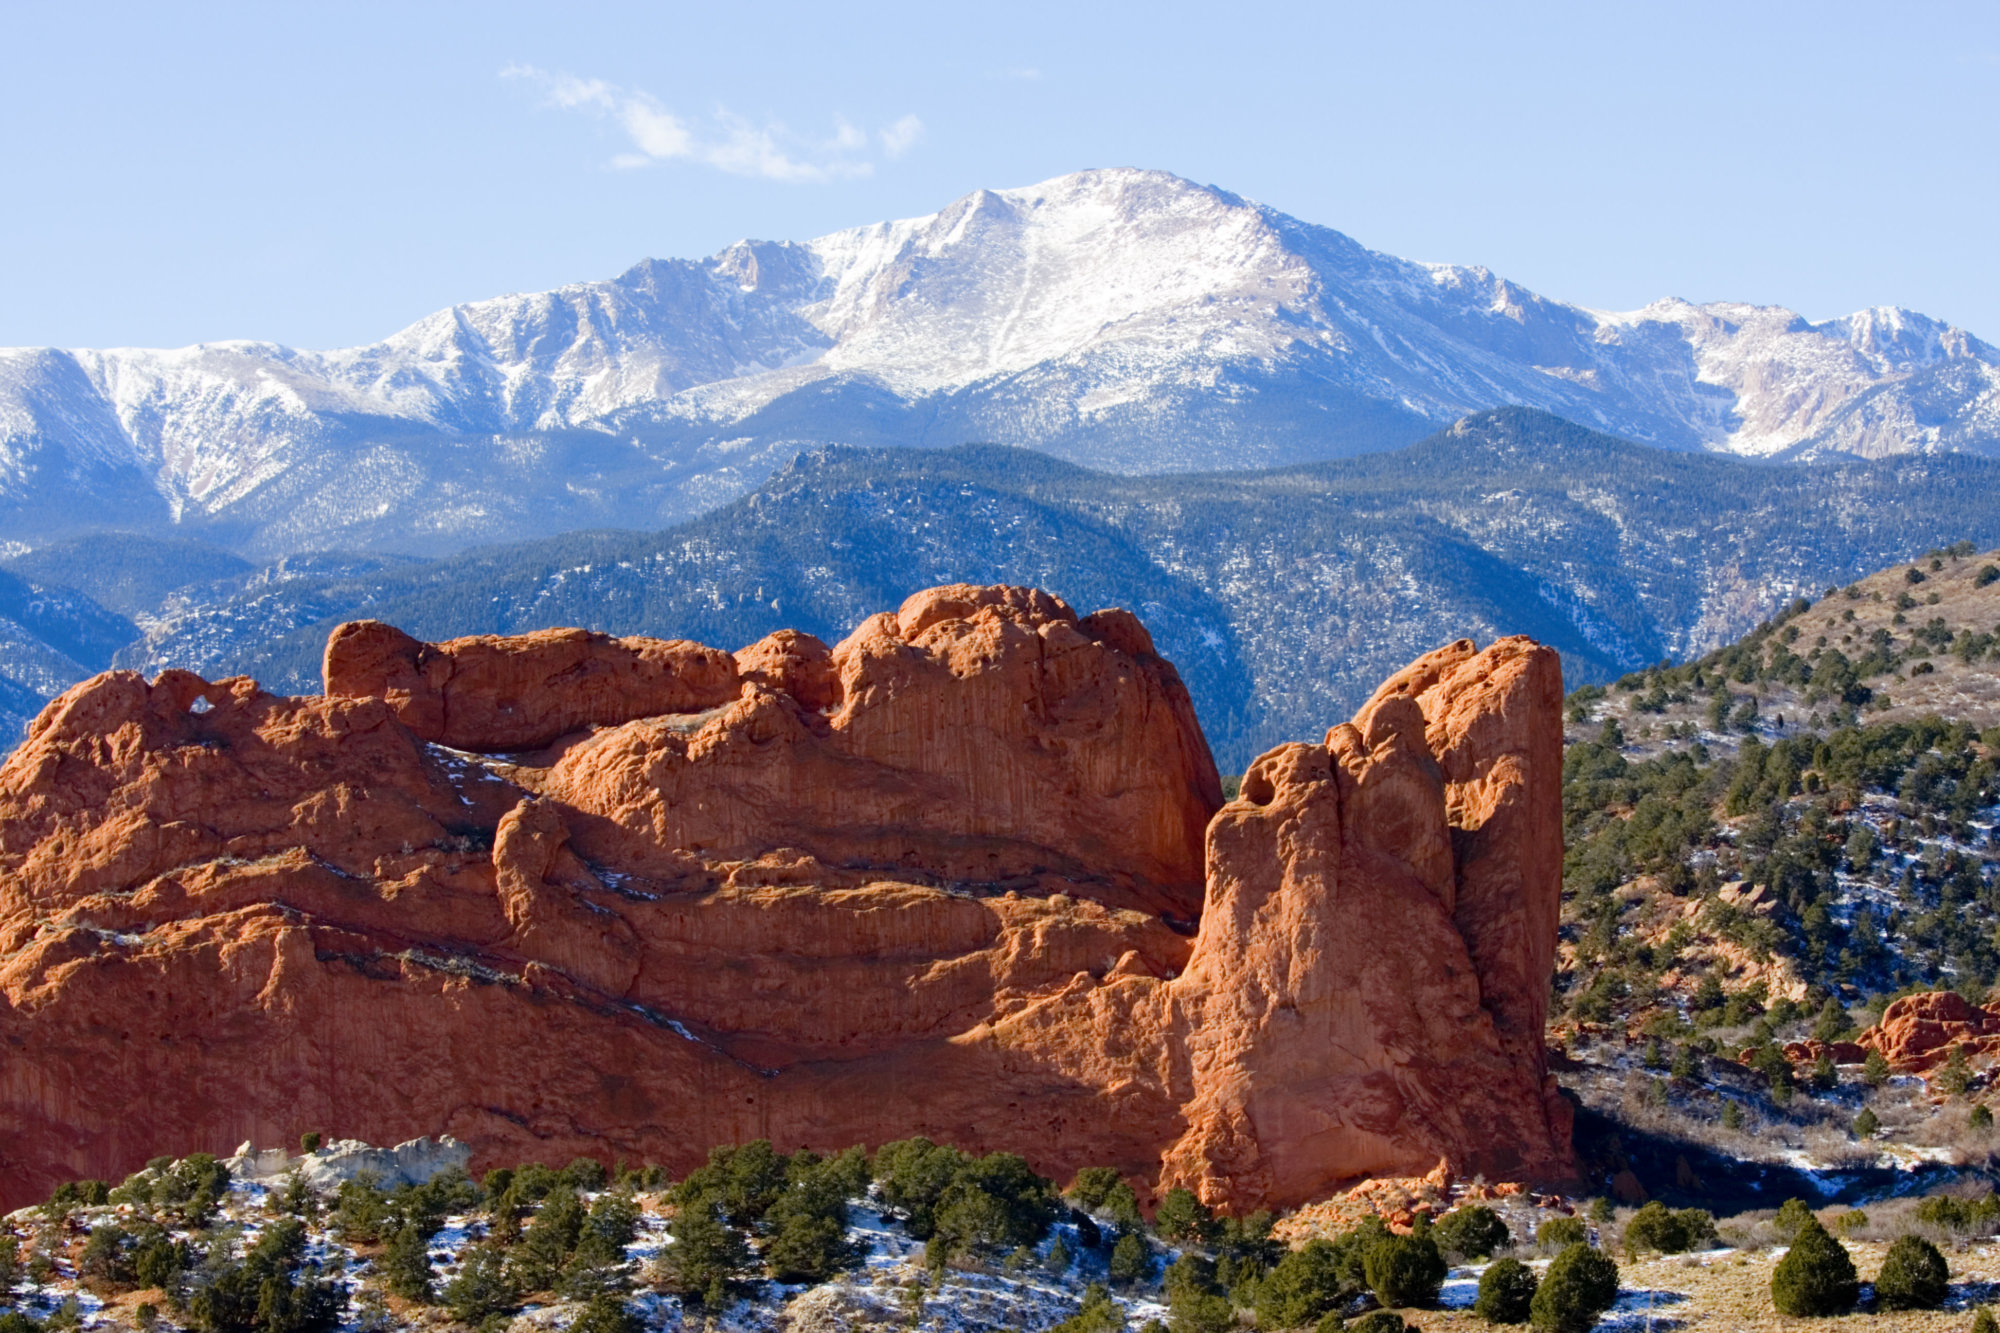 Snow covered Garden of the Gods Park in Colorado Springs at the base of 14000 foot Pikes Peak in the wintertime.